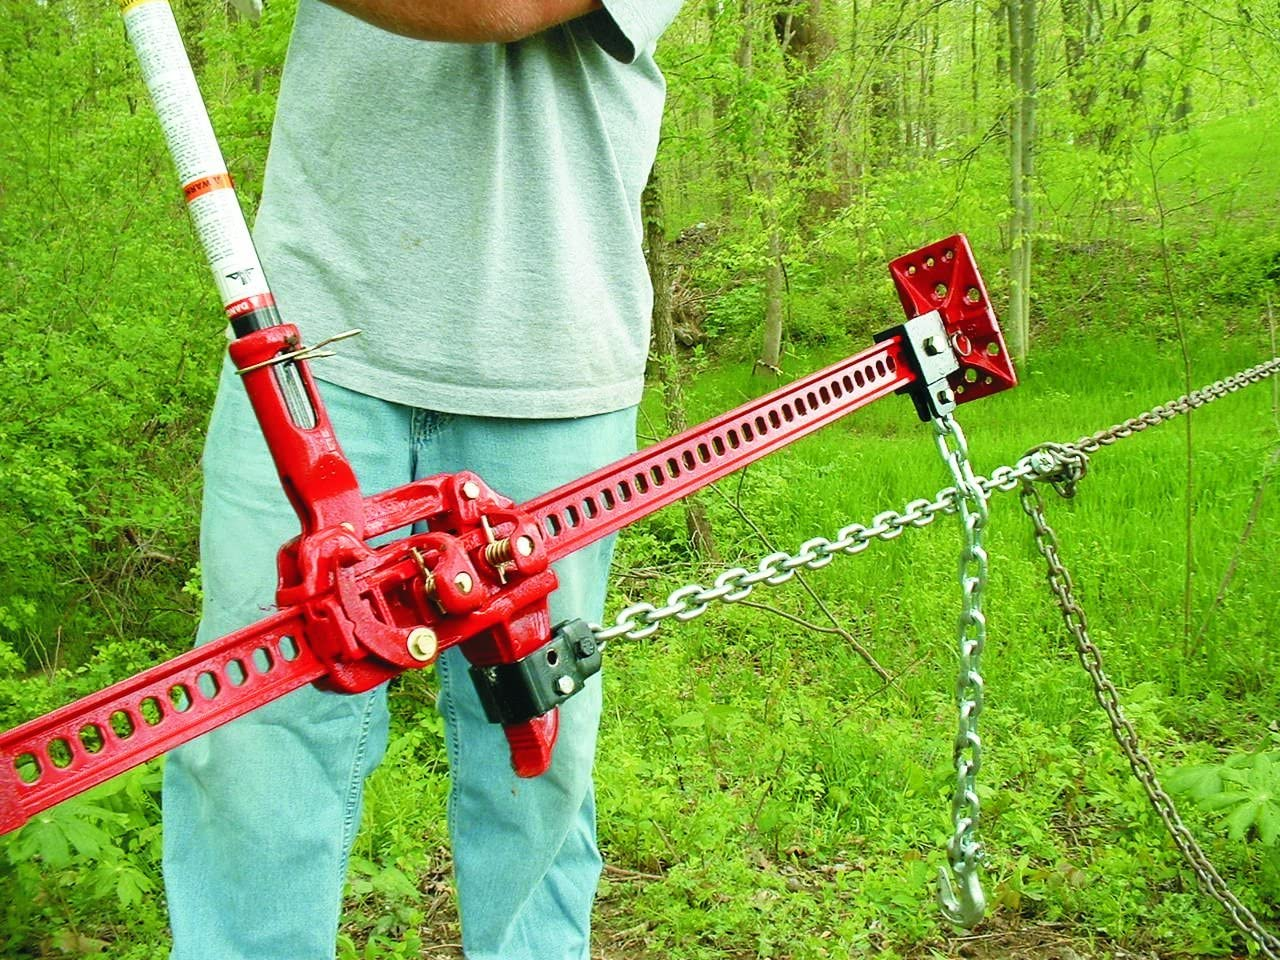 Hi-Lift Jack ORK Off-Road Kit in use